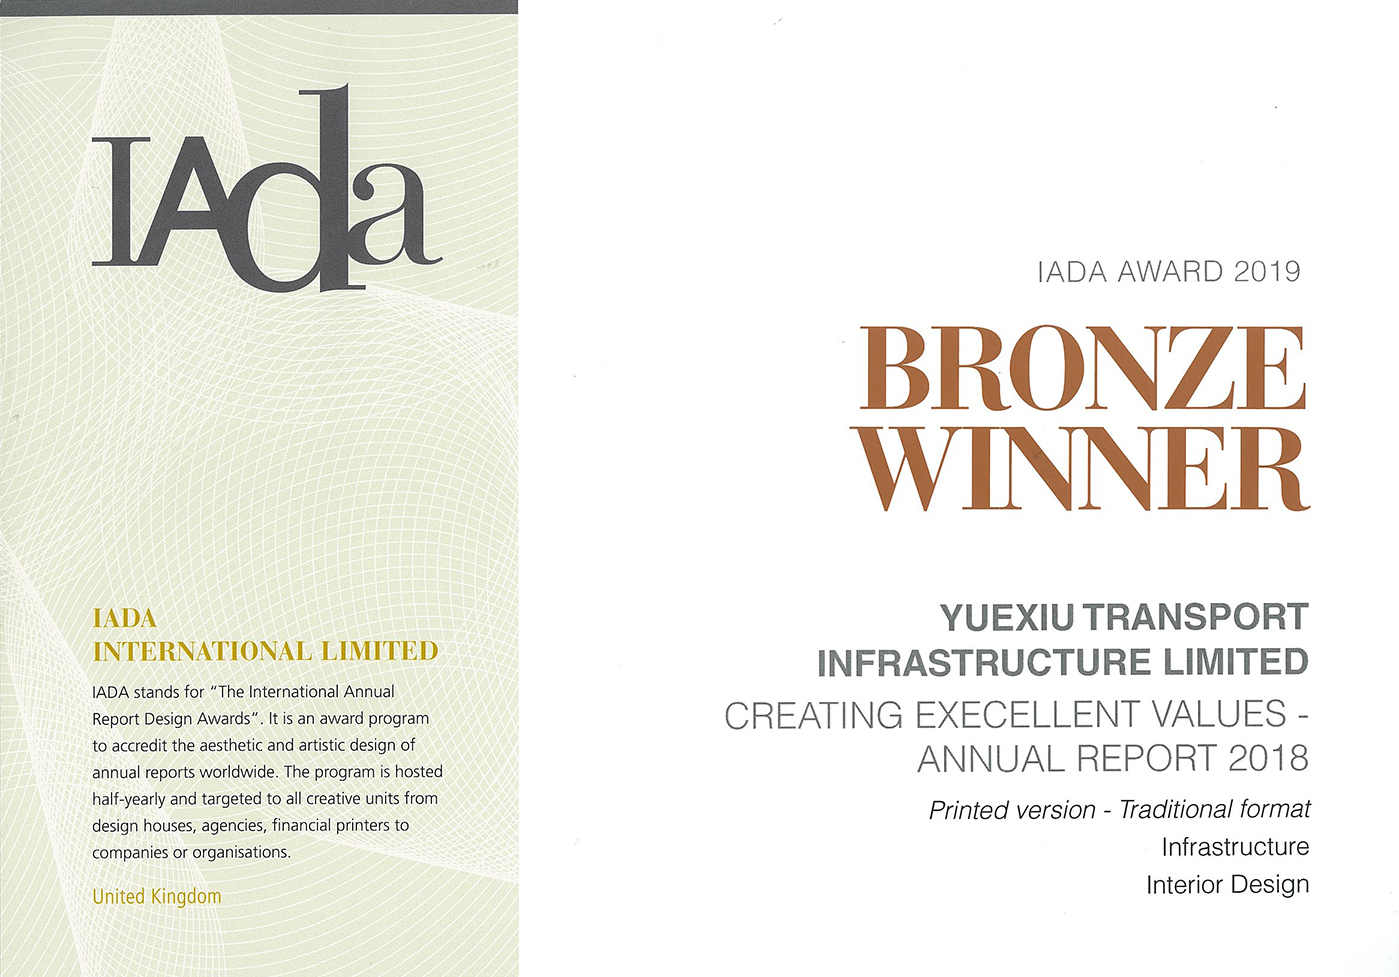 YUEXIU TRANSPORT INFRASTRUCTURE LIMITED – IADA AWARD 2019 BRONZE WINNER